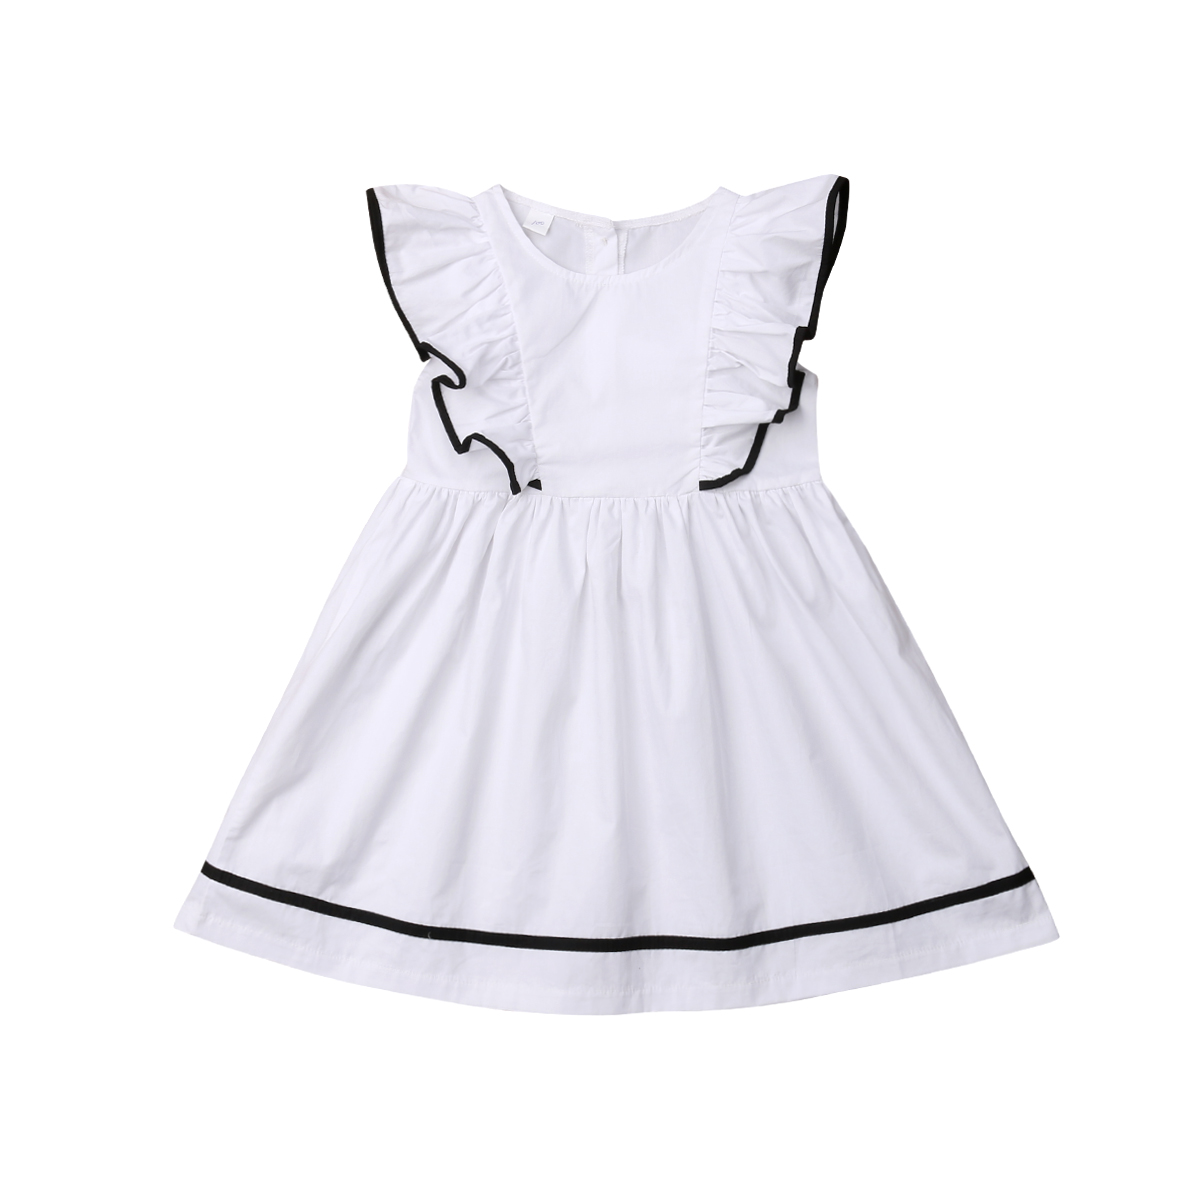 a28a9b11f850 Aliexpress.com : Buy Toddler Kids Baby Girls Clothes Ruffle Dress Party  Princess Tutu Dress White Sundress from Reliable Dresses suppliers on Baby  S069 ...